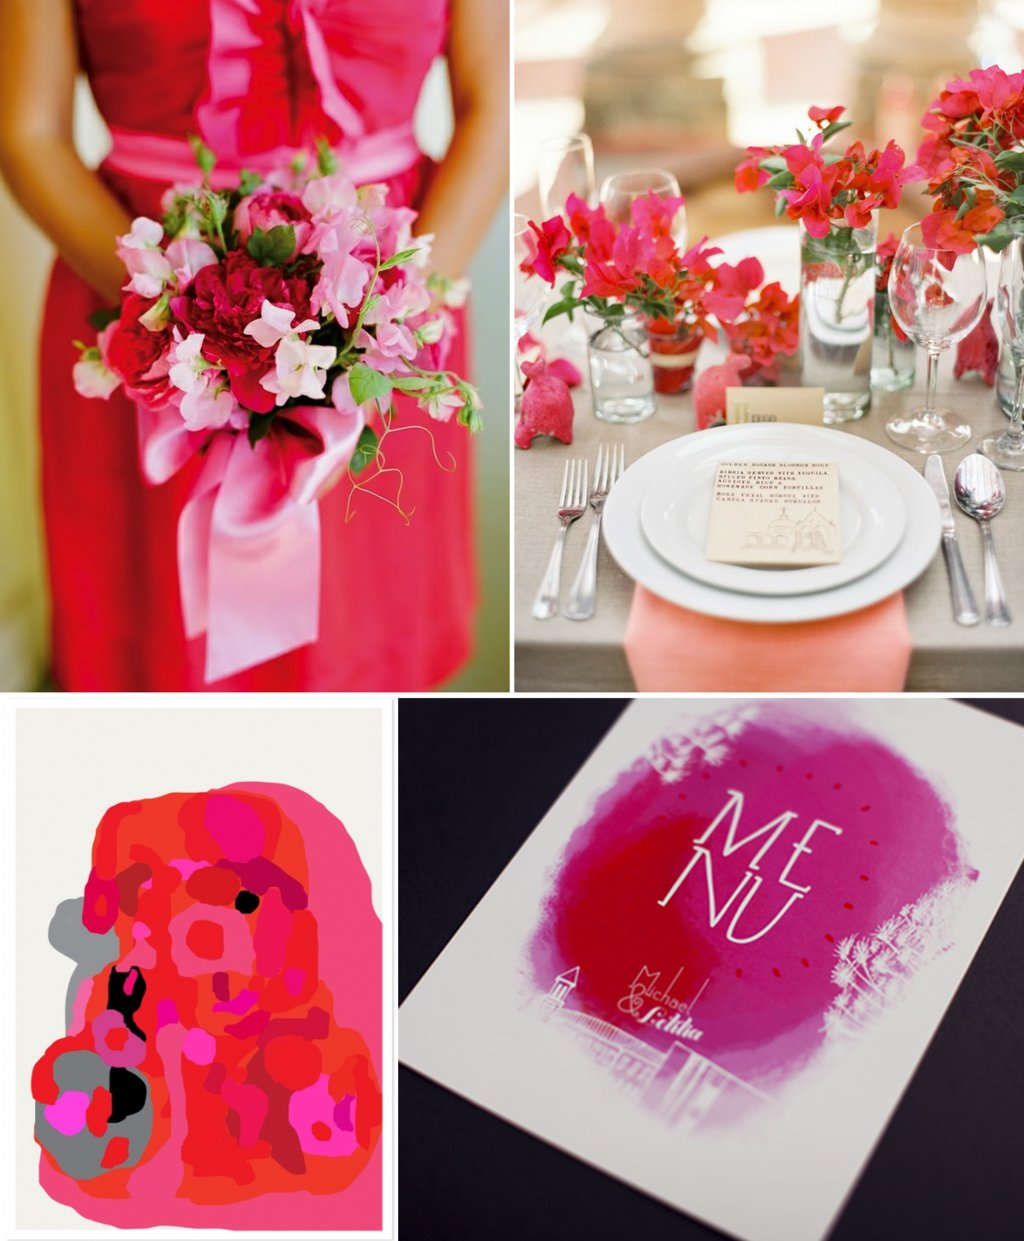 Pretty-pink-wedding-inspiration-monochromatic-color-palettes.full